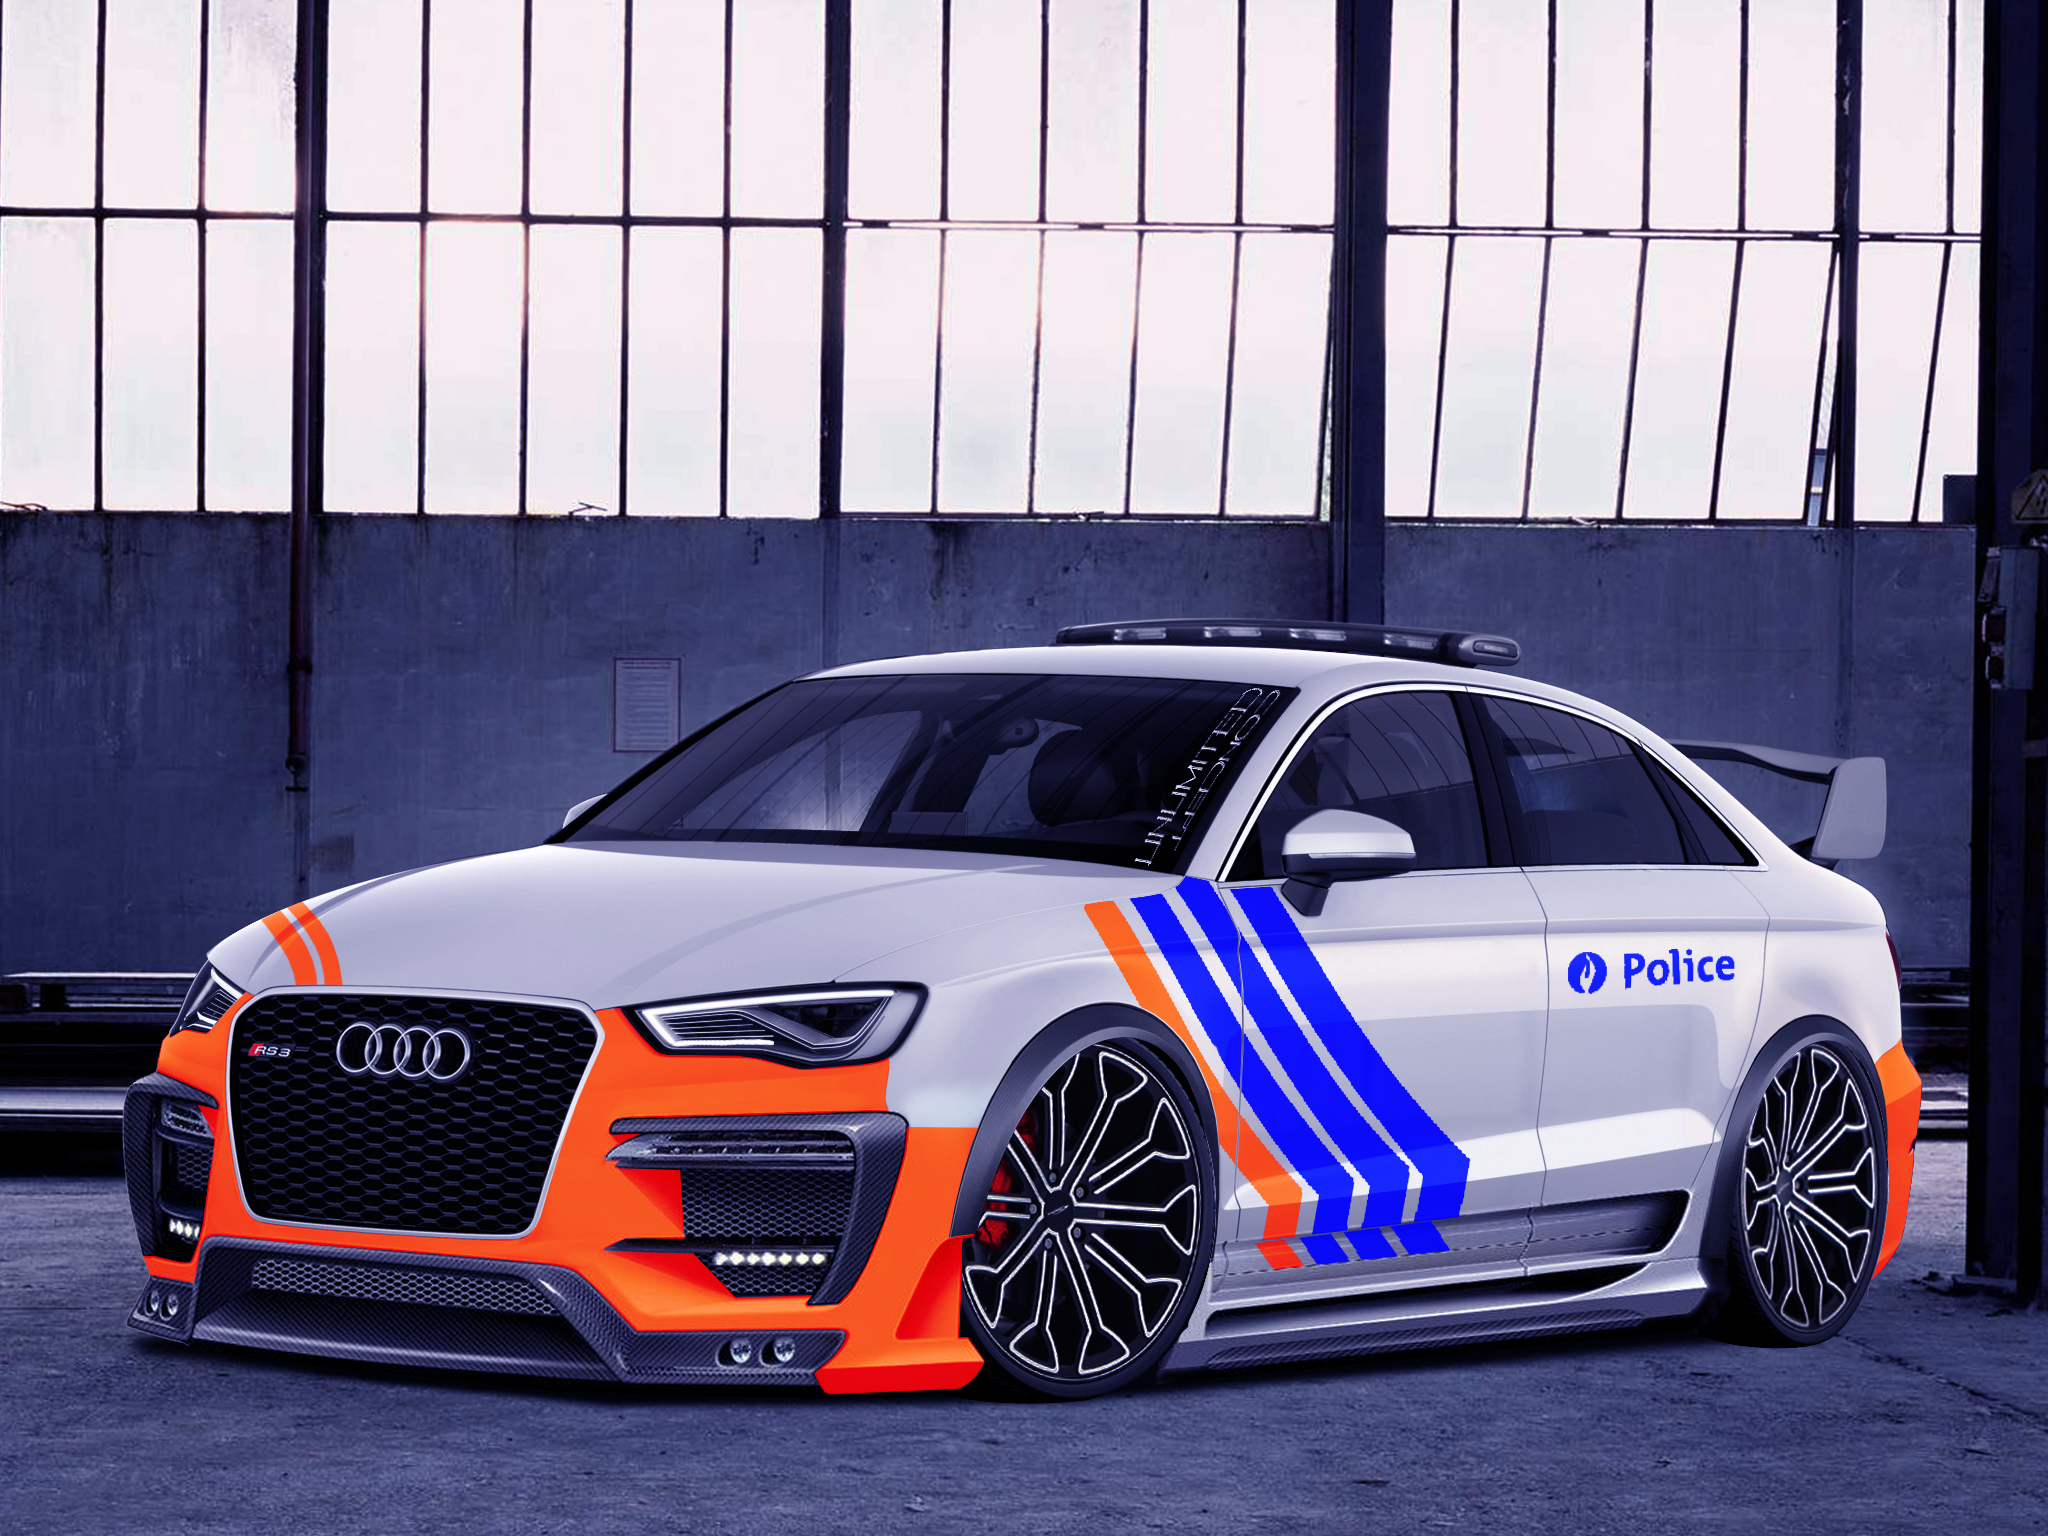 audi a3 rzr police vt unlimited concept unlimited concept photos club. Black Bedroom Furniture Sets. Home Design Ideas